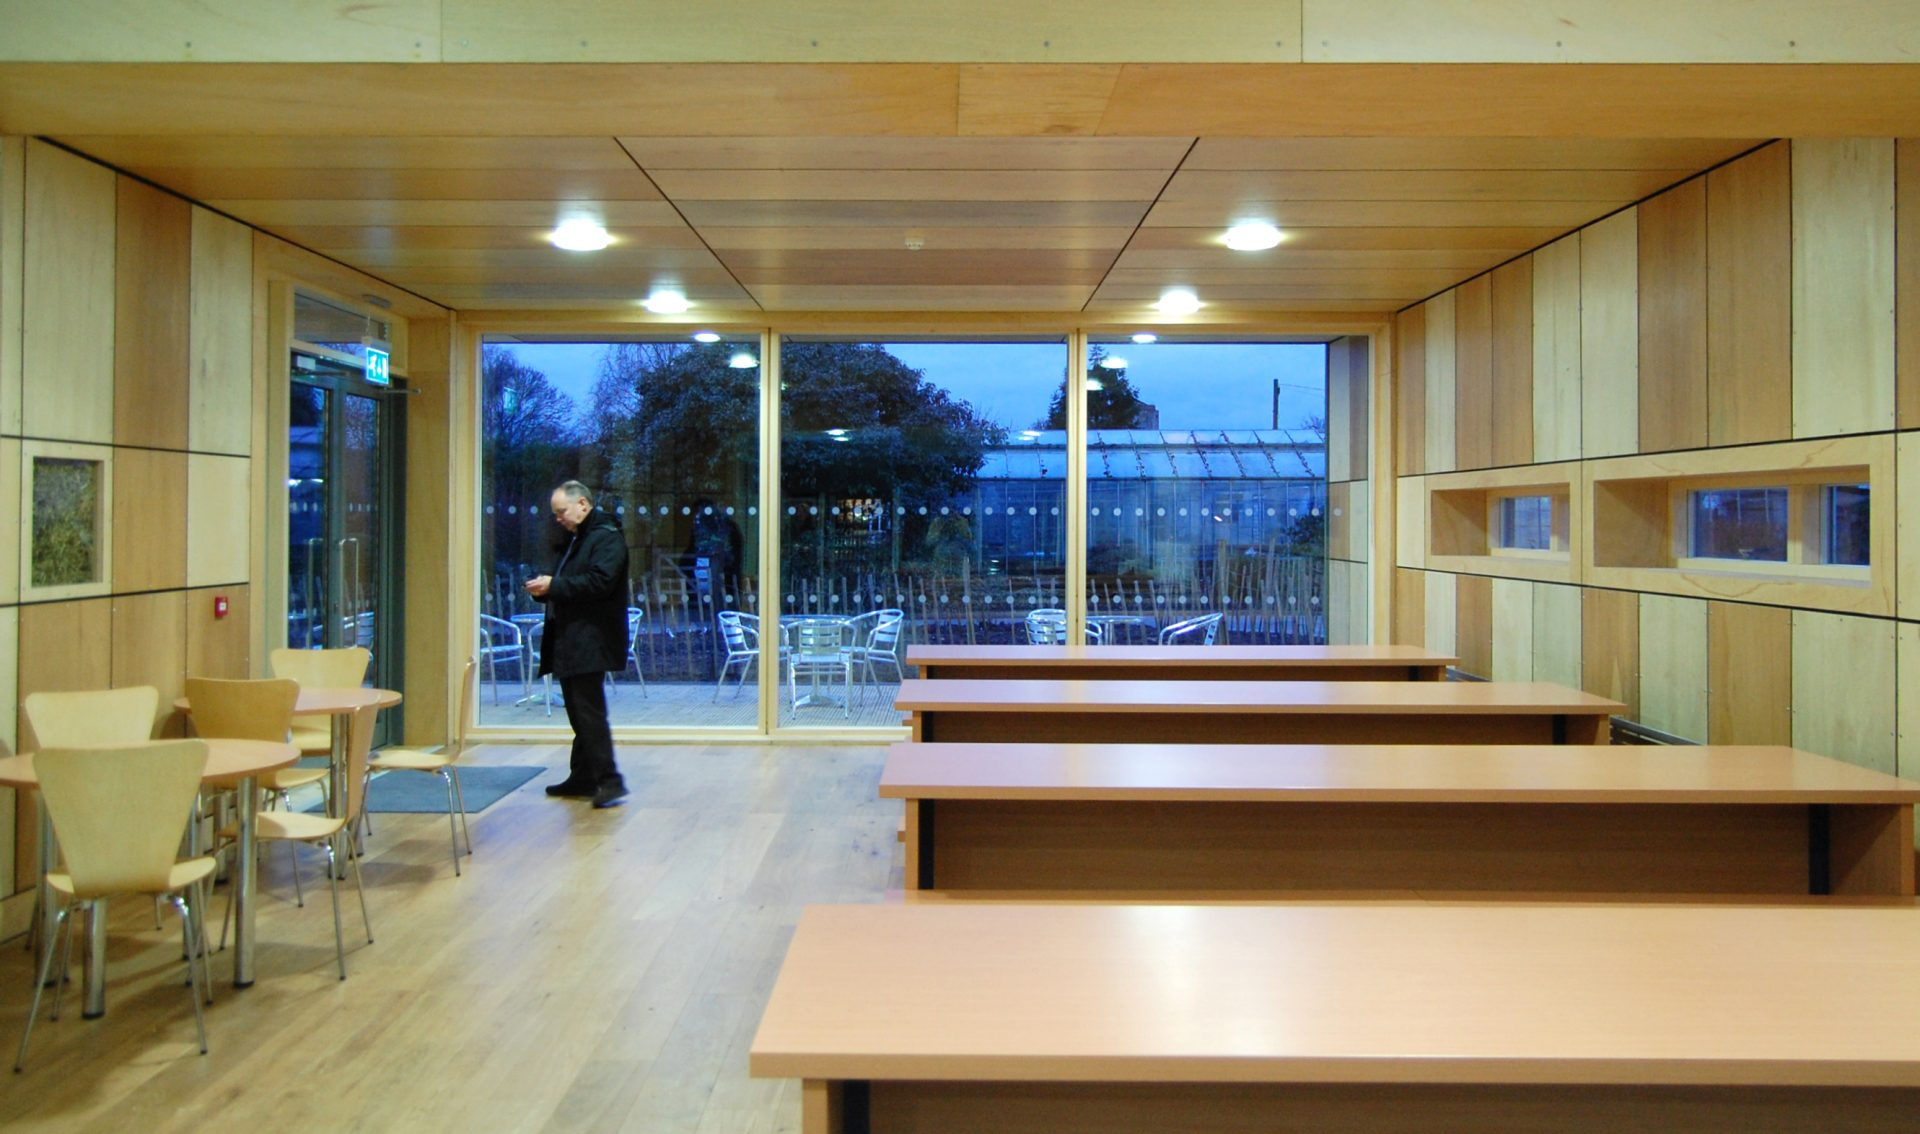 Straw Bale Cafe Interior showing plywood cladding